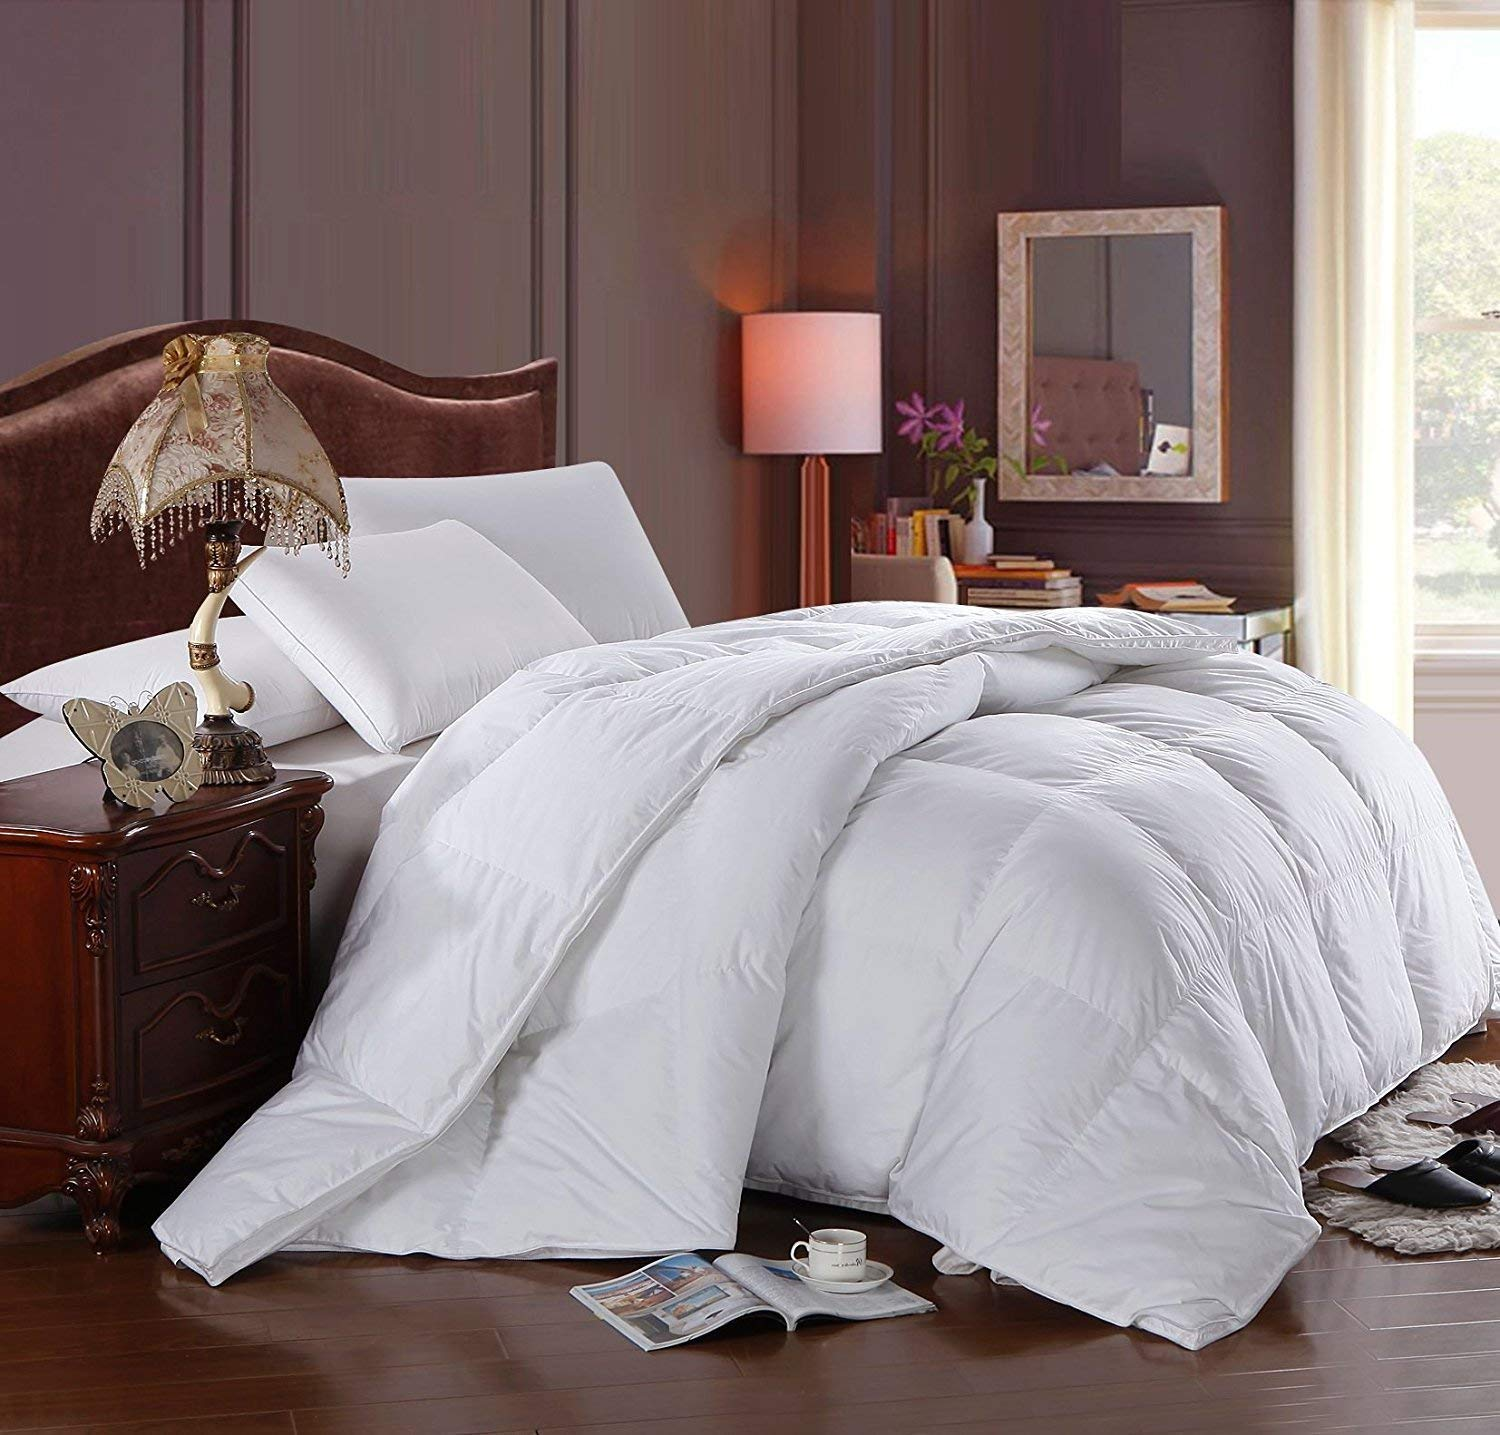 Soft, Light, Warm DOWN COMFORTER, 600 Fill Power, 100% Cotton Cover/Shell, 300 Threadcount, Solid White, OVERSIZED QUEEN Royal Hotel Bedding